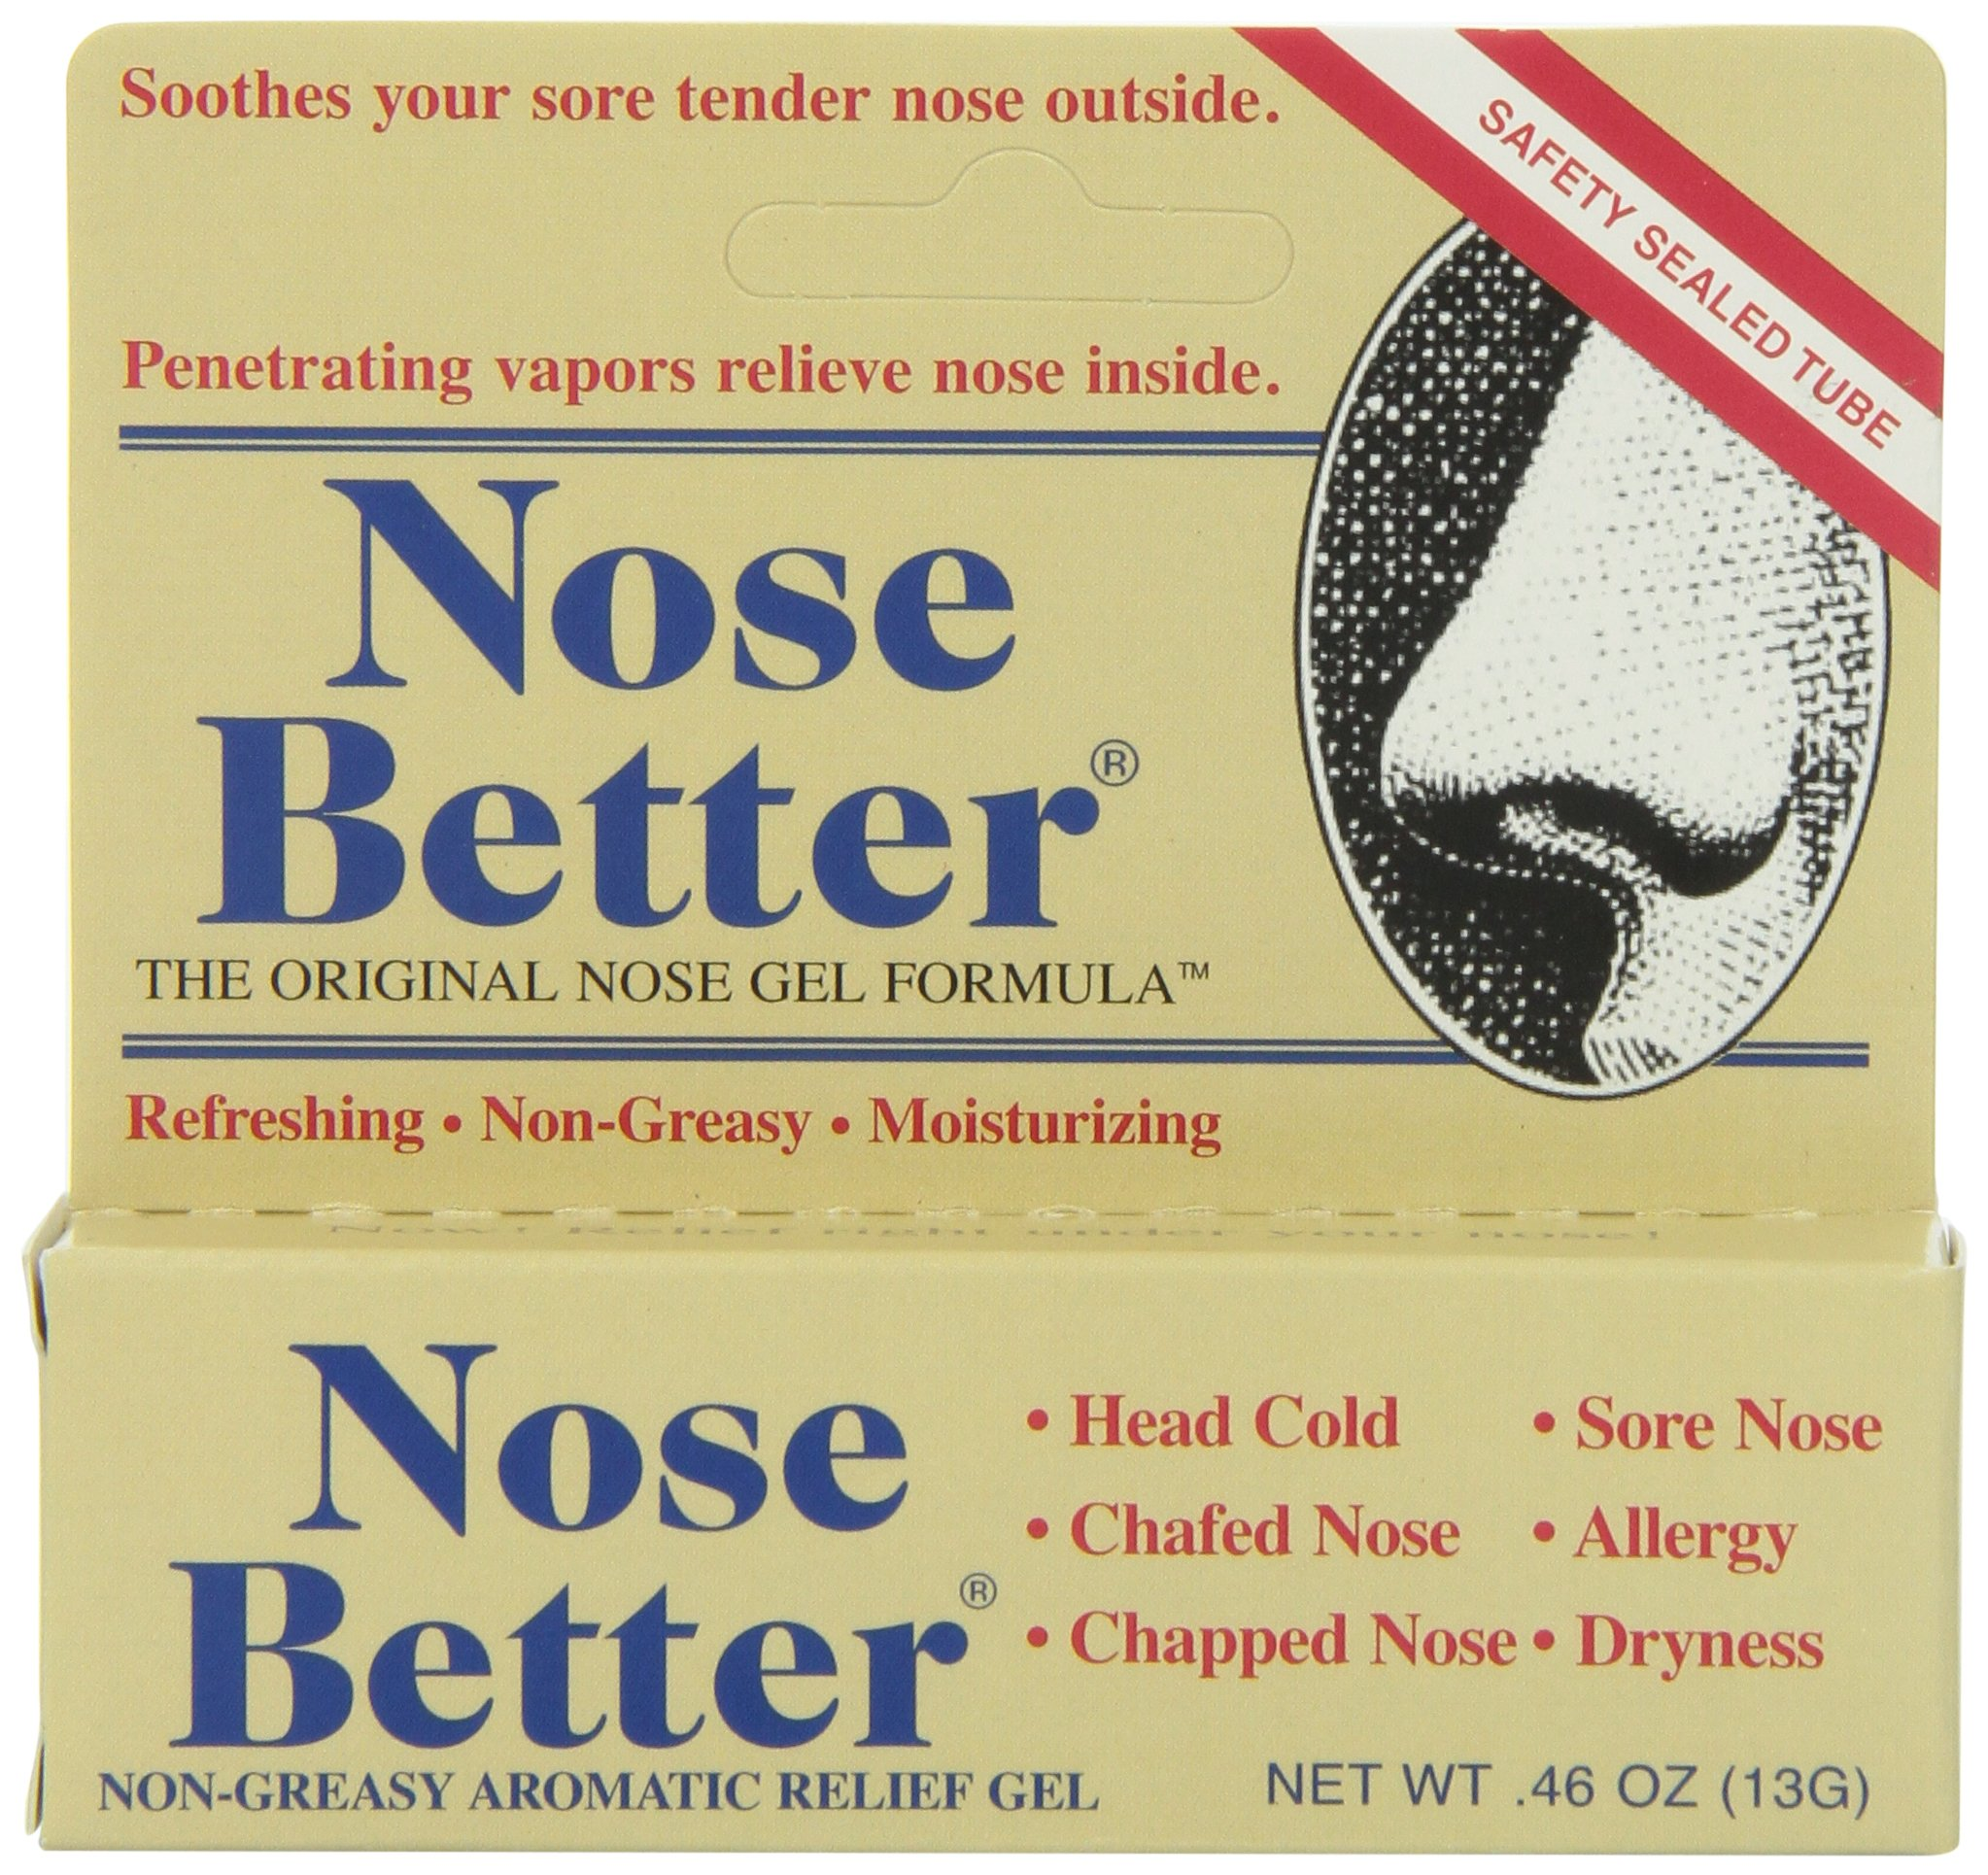 Nose Better Non-Greasy Aromatic Relief Gel .46 oz by Oakhurst Co.